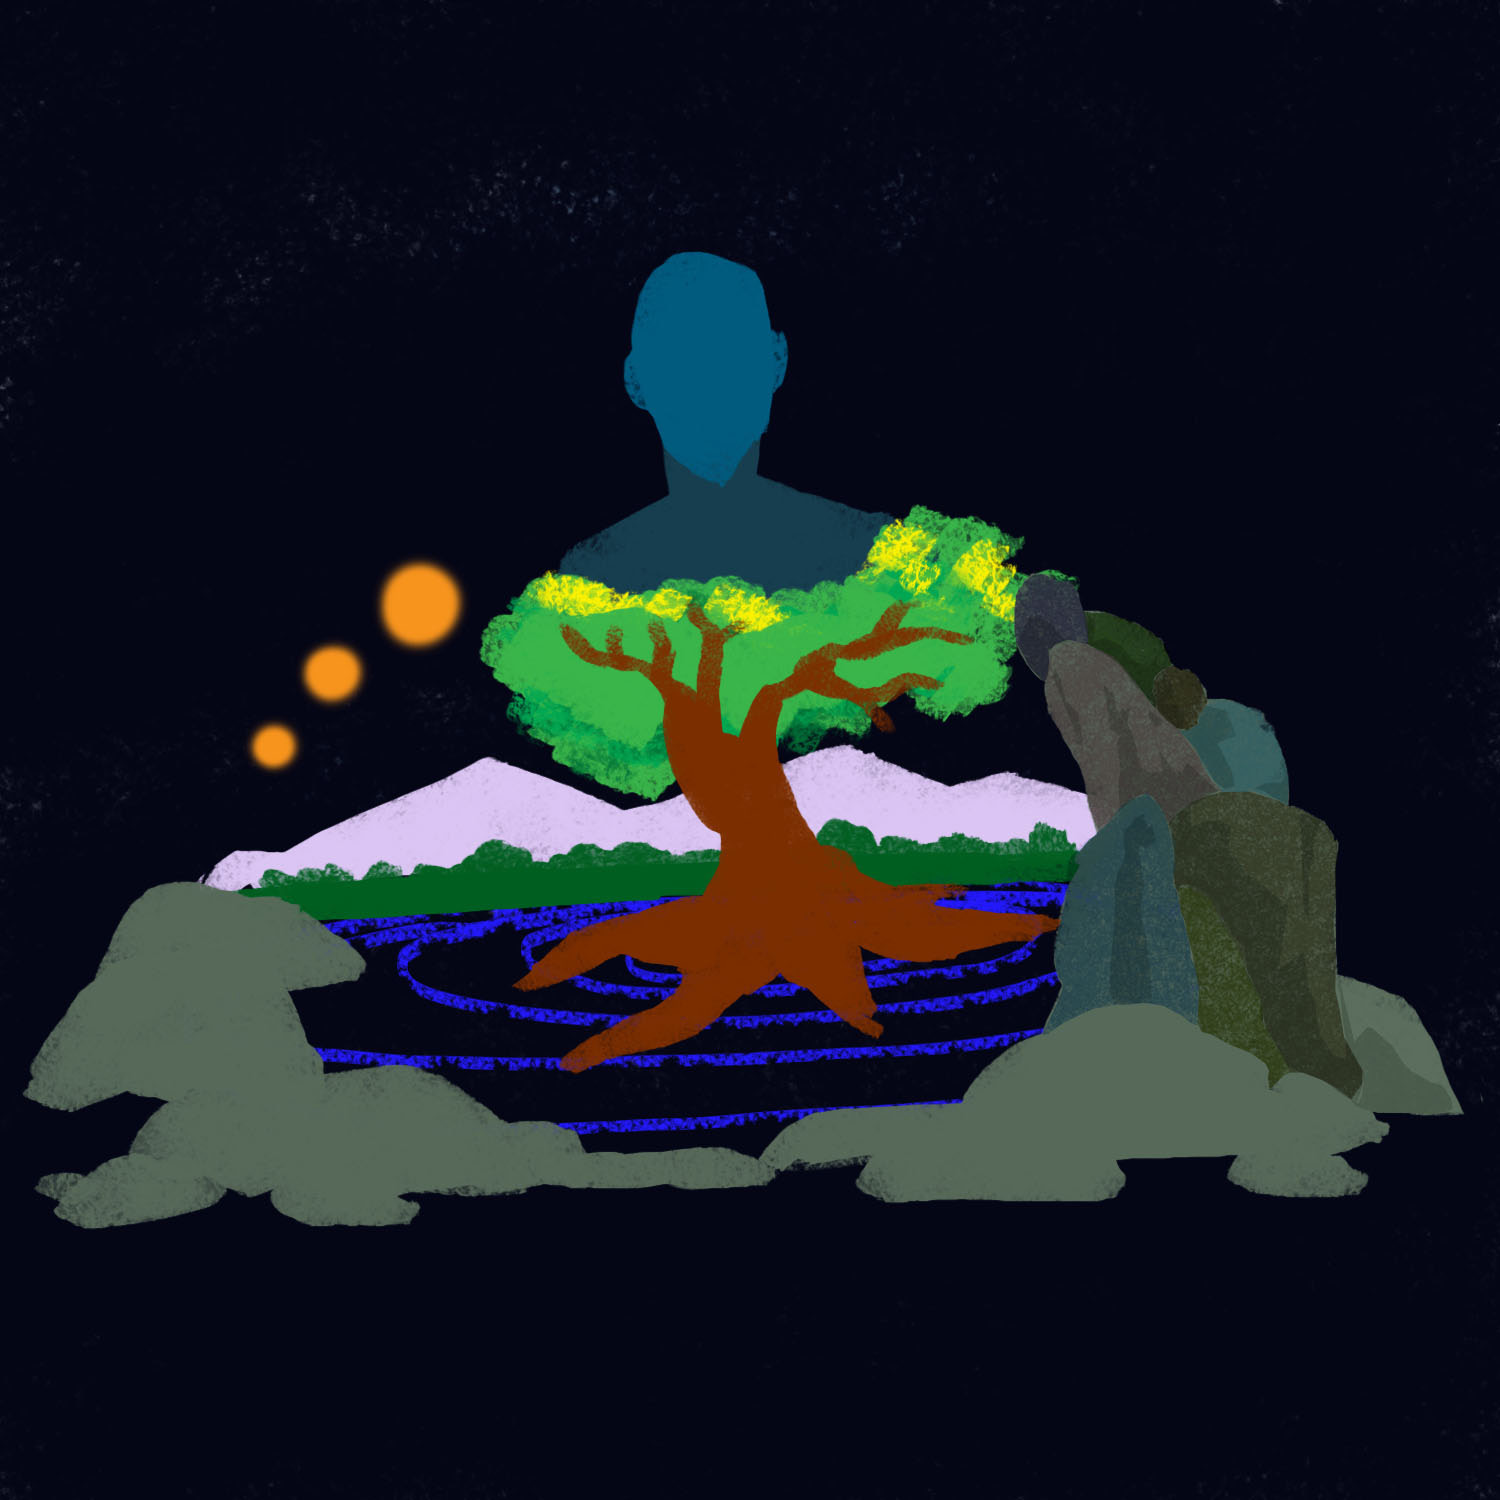 Concept Art: Five Elements An illustrated concept of five elements - earth, water, fire, air, space - that constitute both Man and the Universe. Based on ancient Indian philosophy.